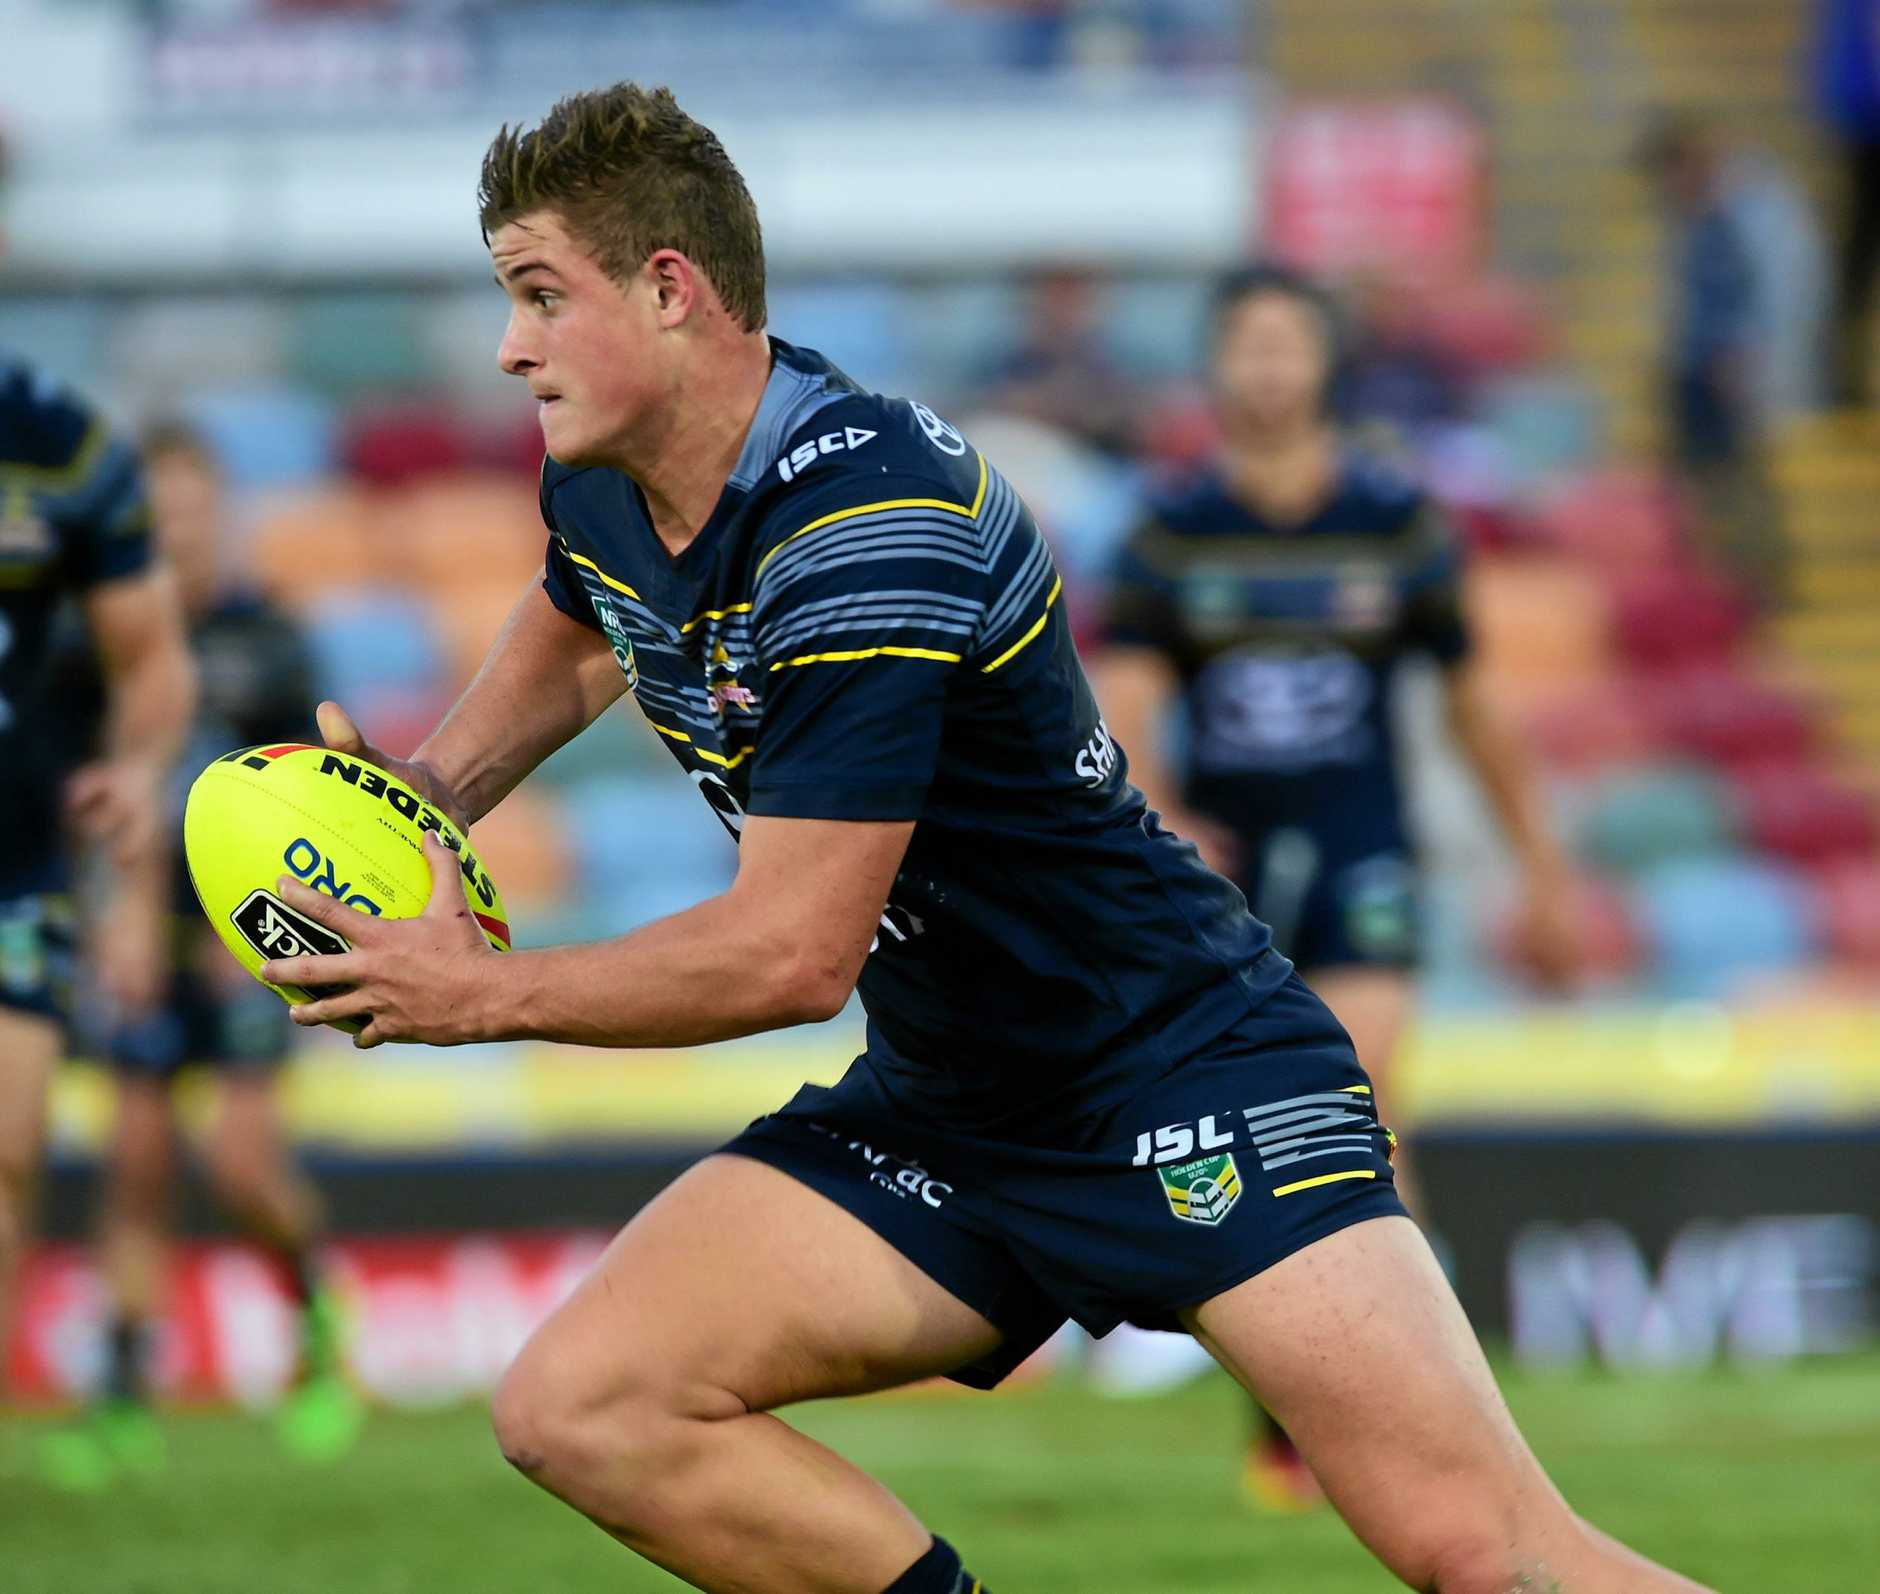 NYC  match between North Queensland Cowboys and Gold Coast Titans at 1300Smiles Stadium. Cowboys Mitch Dunn. Picture: Evan Morgan